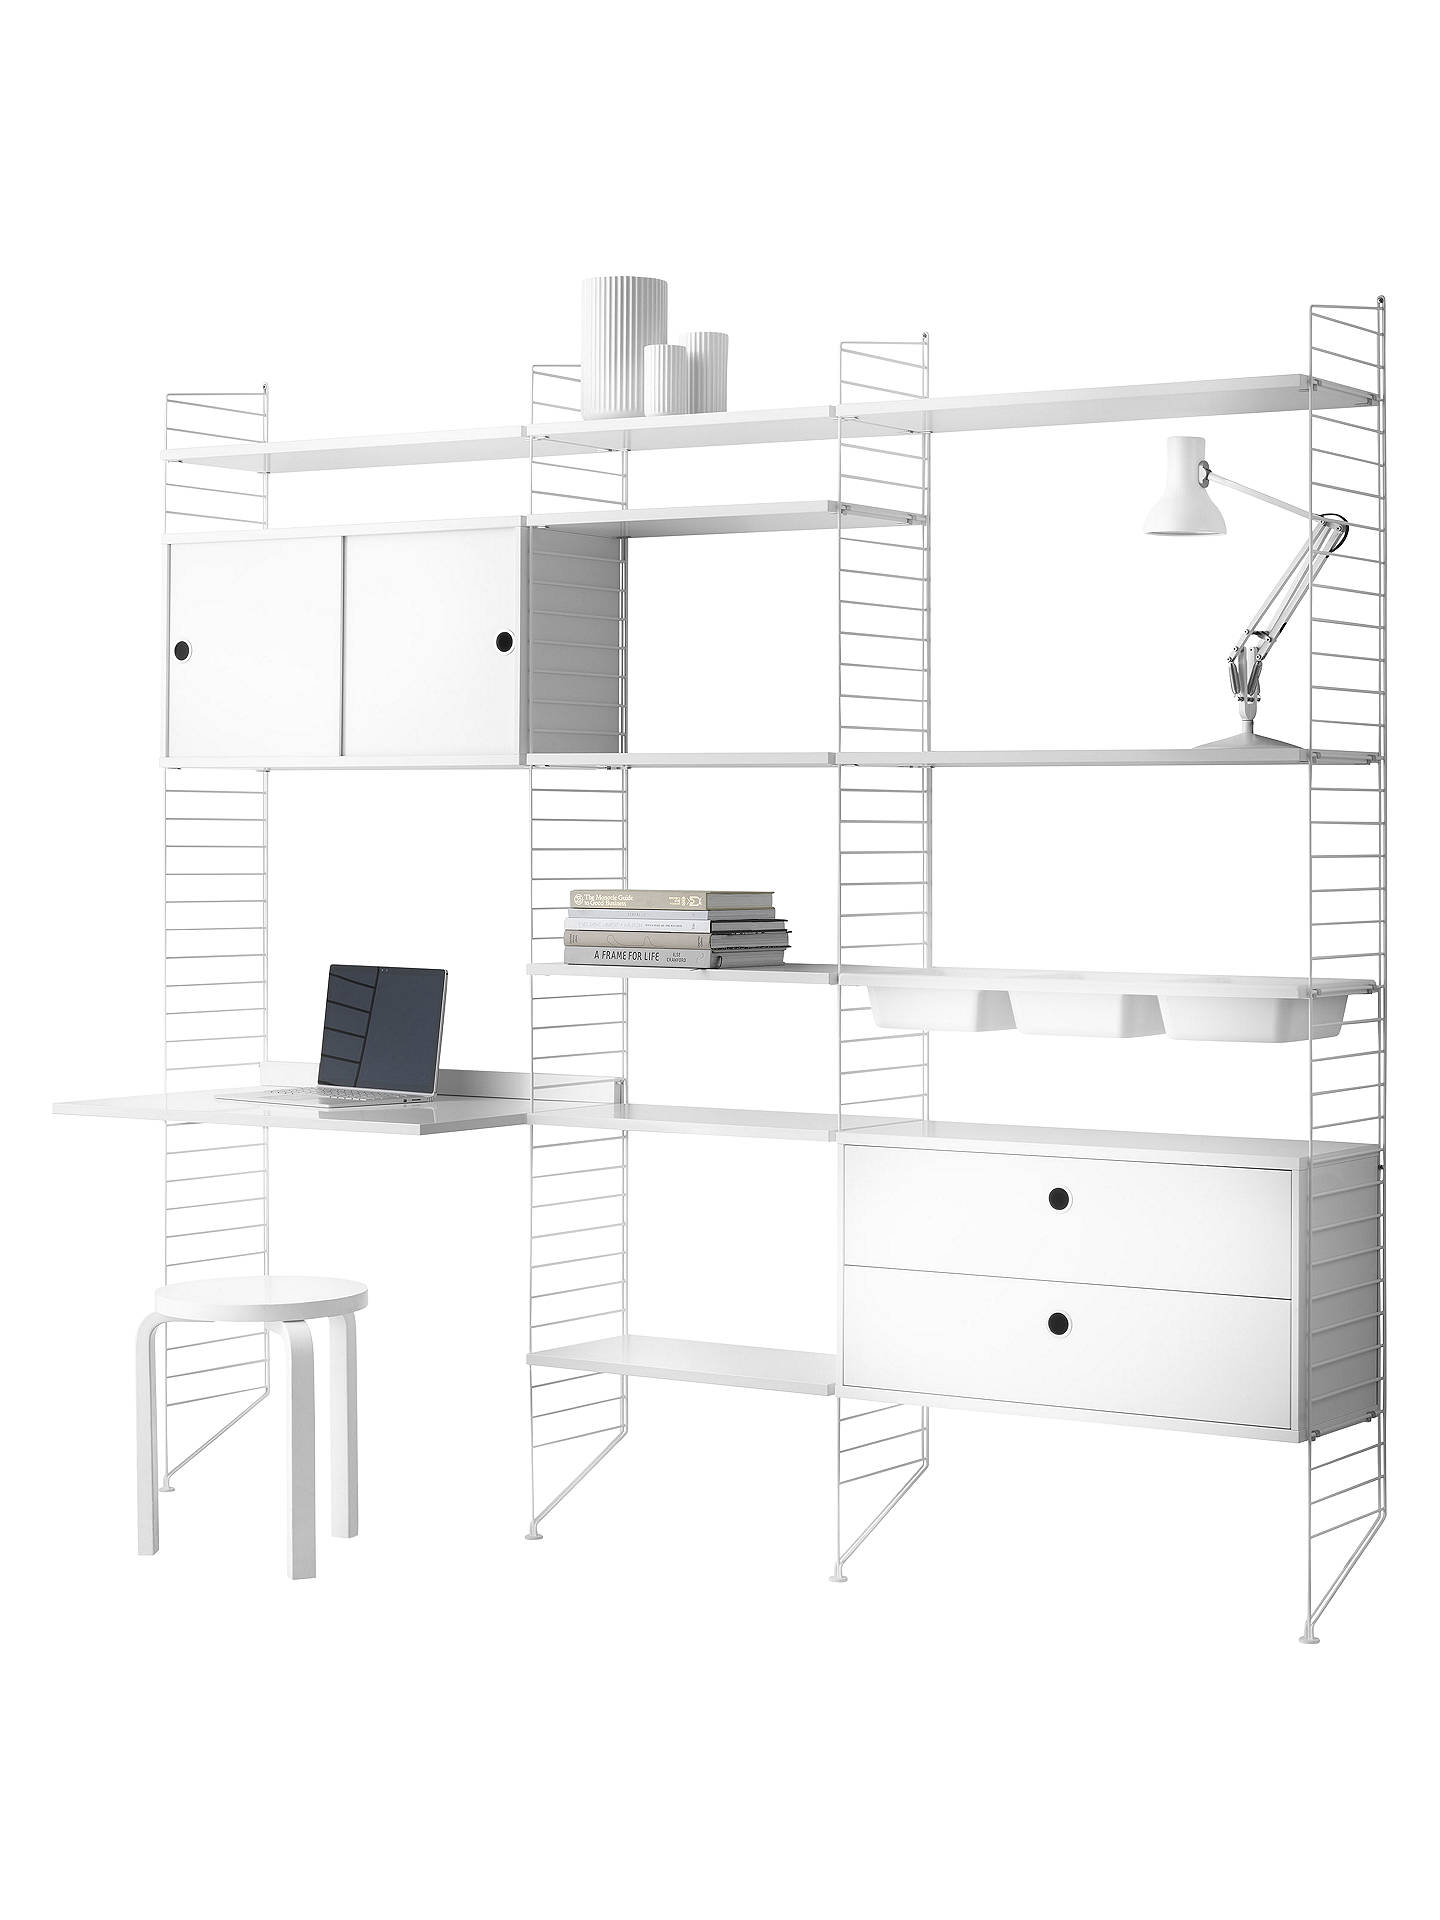 Buystring Shelving Unit with Drawers, Cabinet, Work Desk, Bowl Shelves and Wall Fastened Side Racks, White Online at johnlewis.com